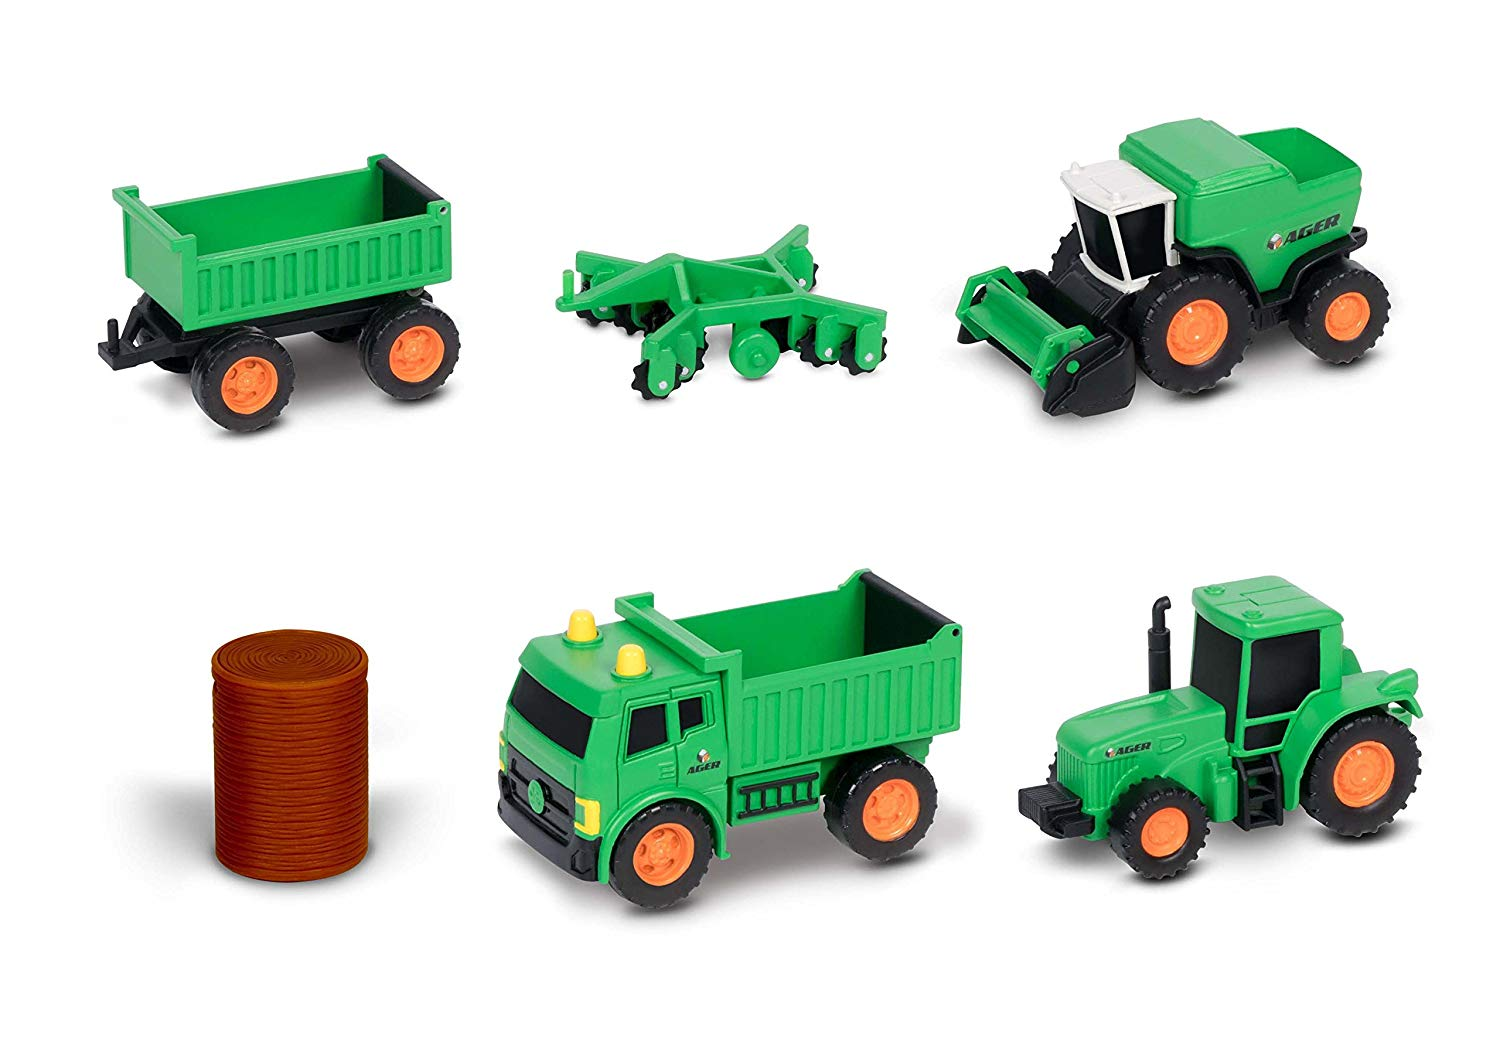 Nikko 9907 Mini Farming Vehicles - Dumper Tractor Trailer Combine set